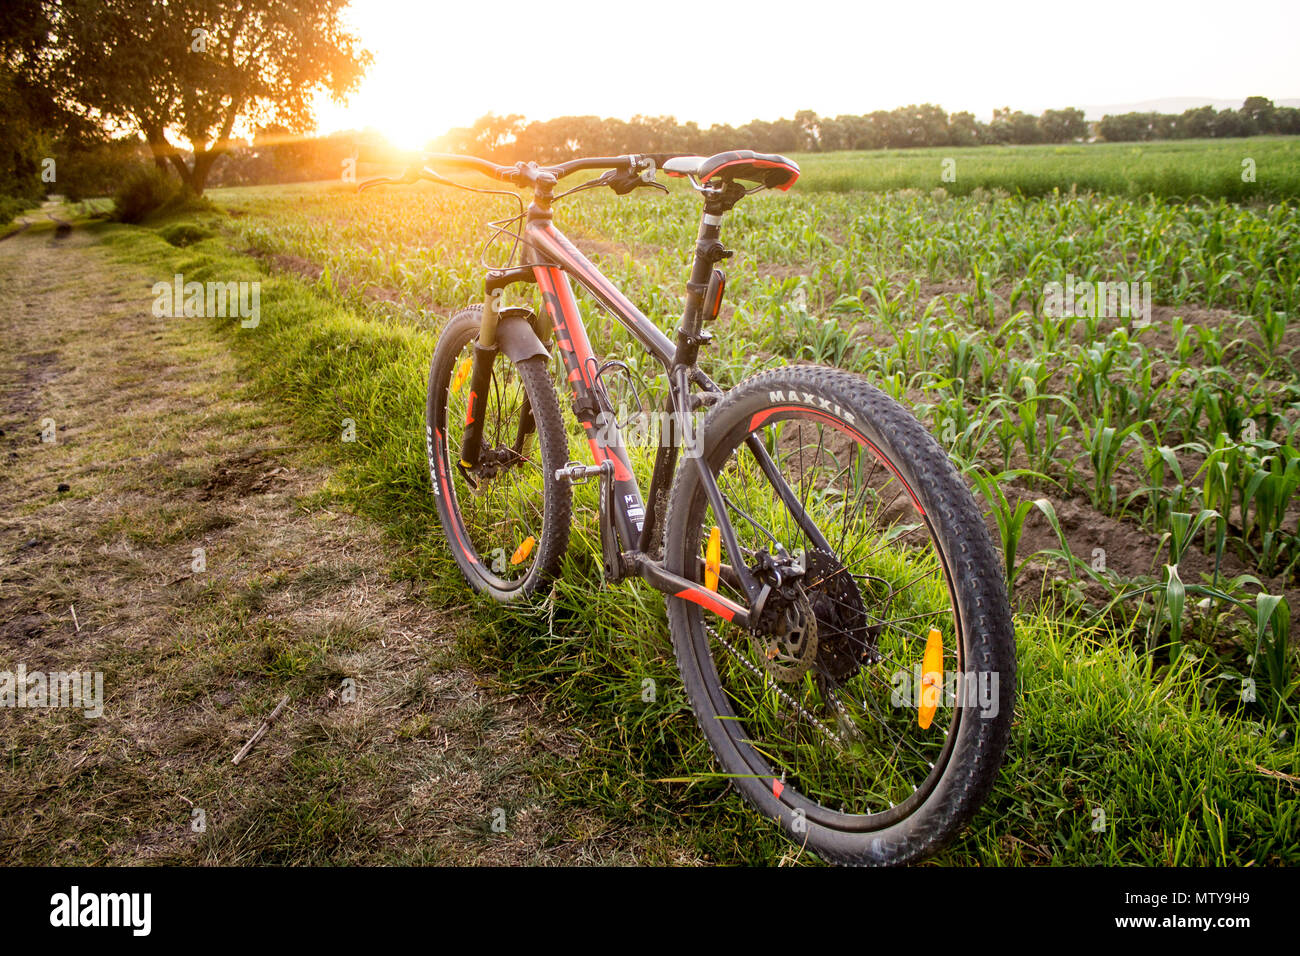 Tlaxcala, Mexico - May 27.2018. The Giant Talon 1 is manufactured by the a Taiwanese company Giant,  that is recognized as the world's largest bicycle - Stock Image